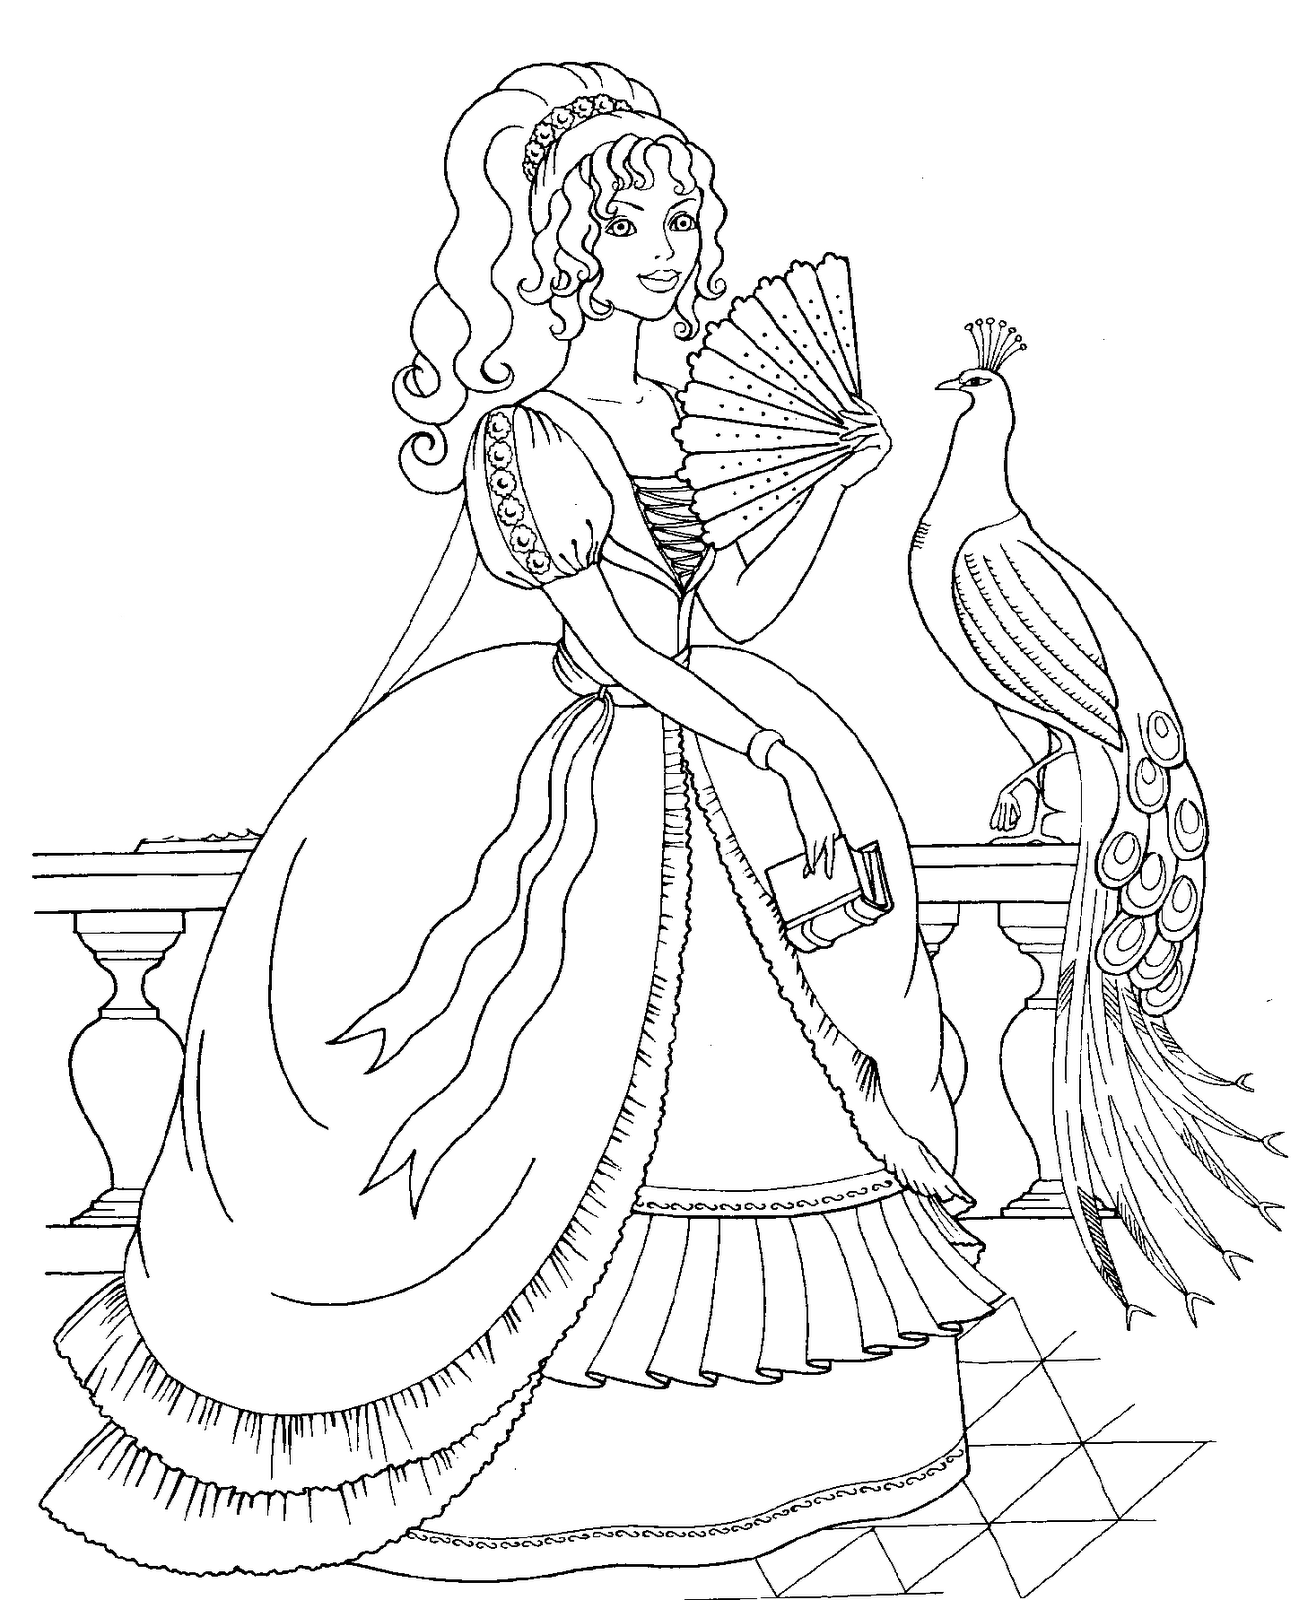 coloring pages of disney princesses - photo#35